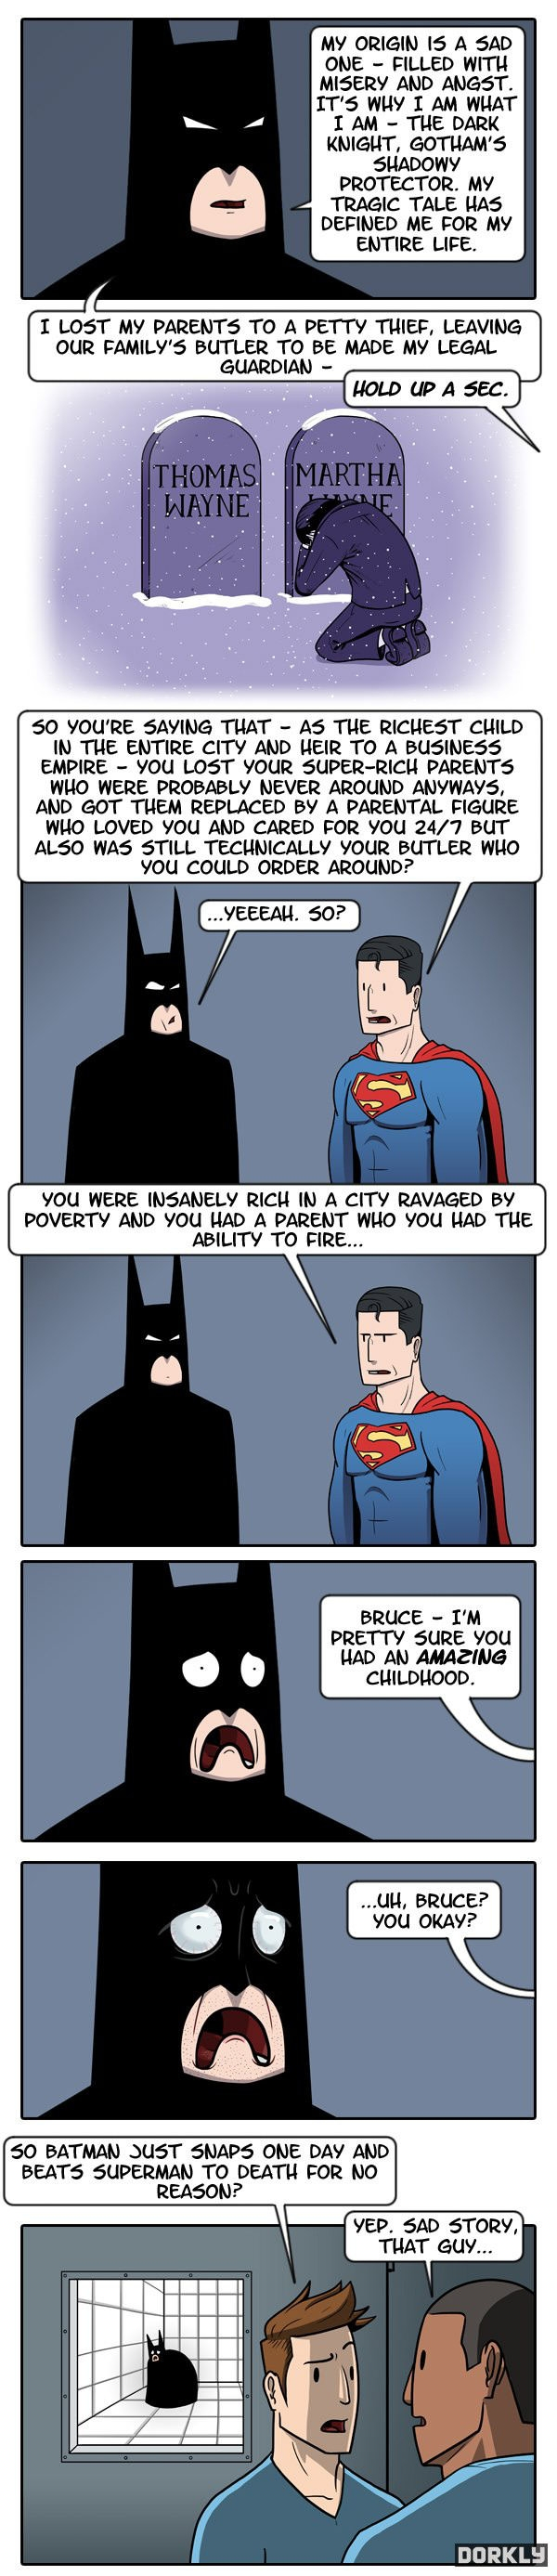 Batman's tragic origins